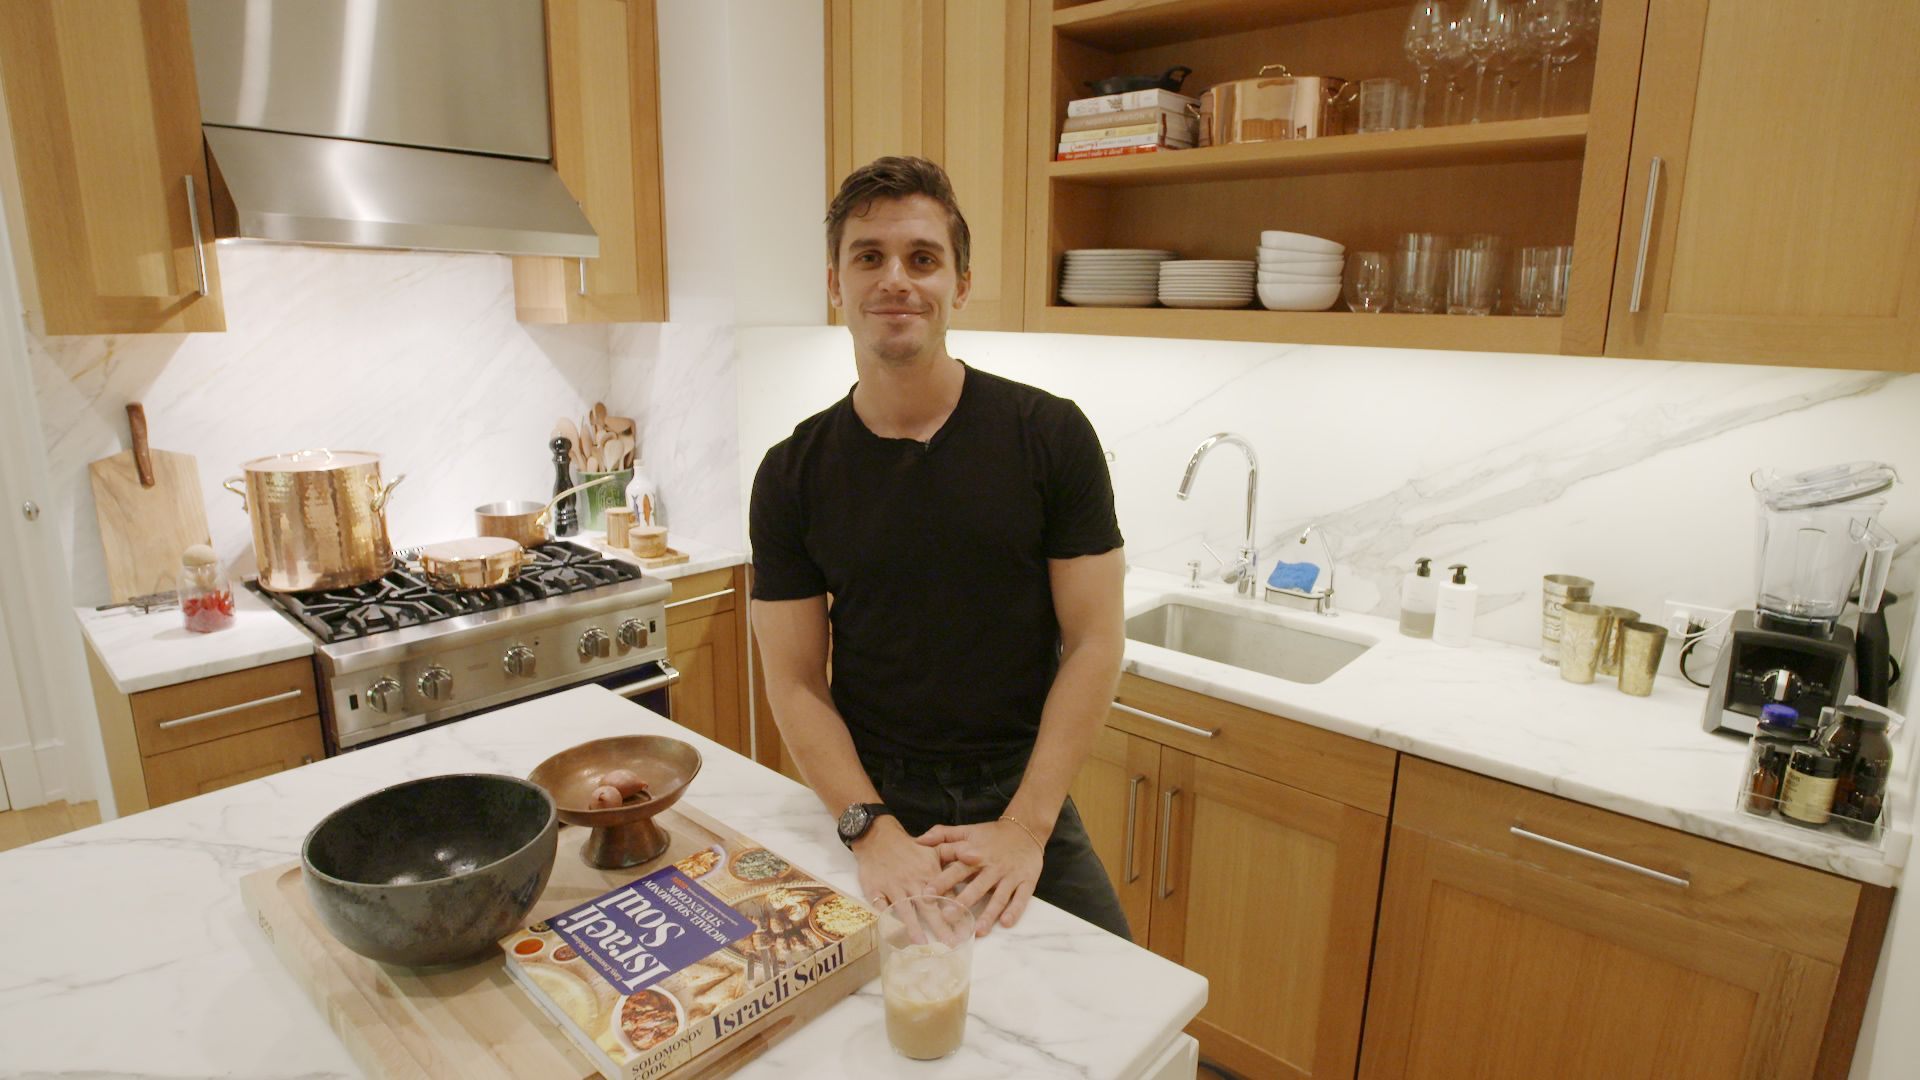 Antoni Porowski's Kitchen Is Filled With An Obscene Amount Of Salt, Bags Of Fish Sticks, And A Light-Up Bottle Of Belvedere